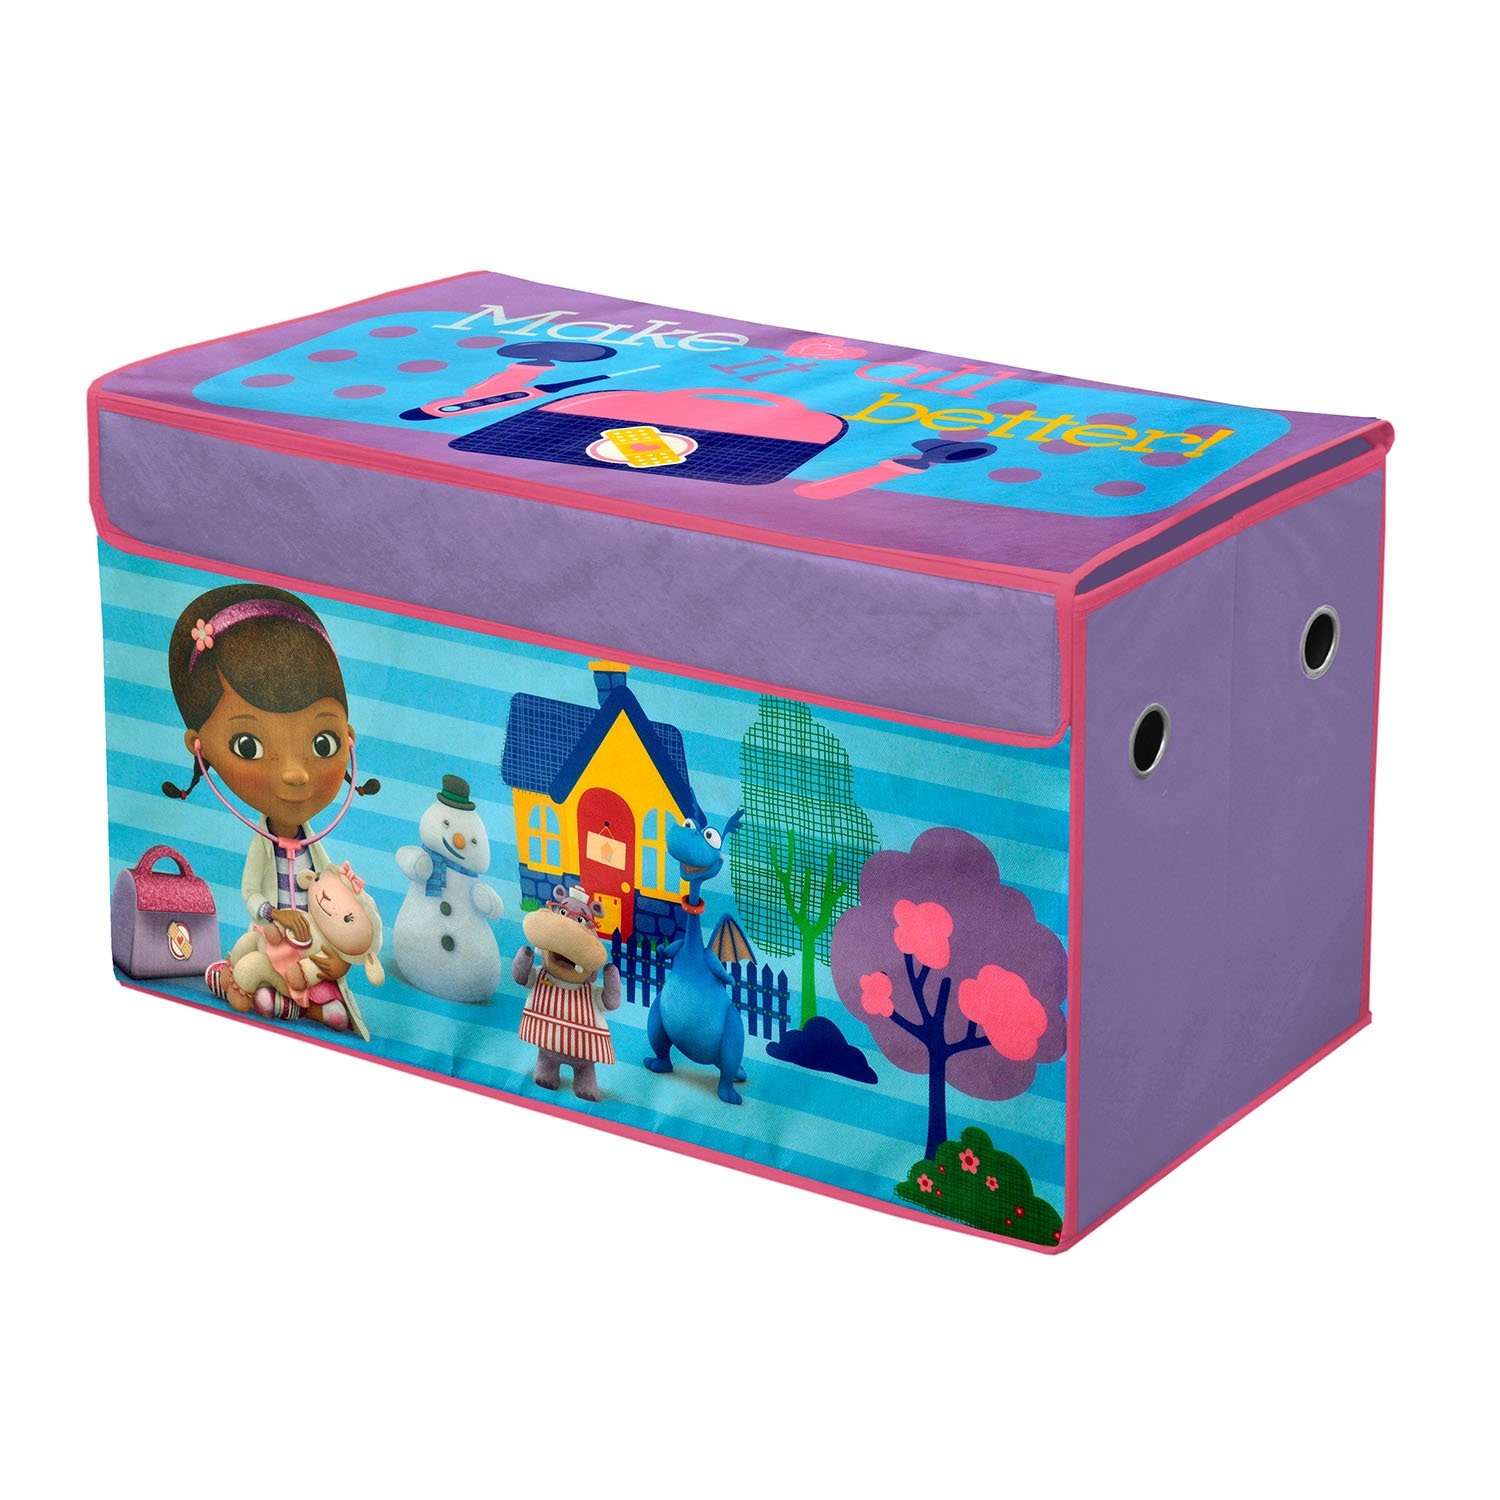 Dreamworks Trolls Collapsible Storage Trunk Idea Nuova - LA NK550548